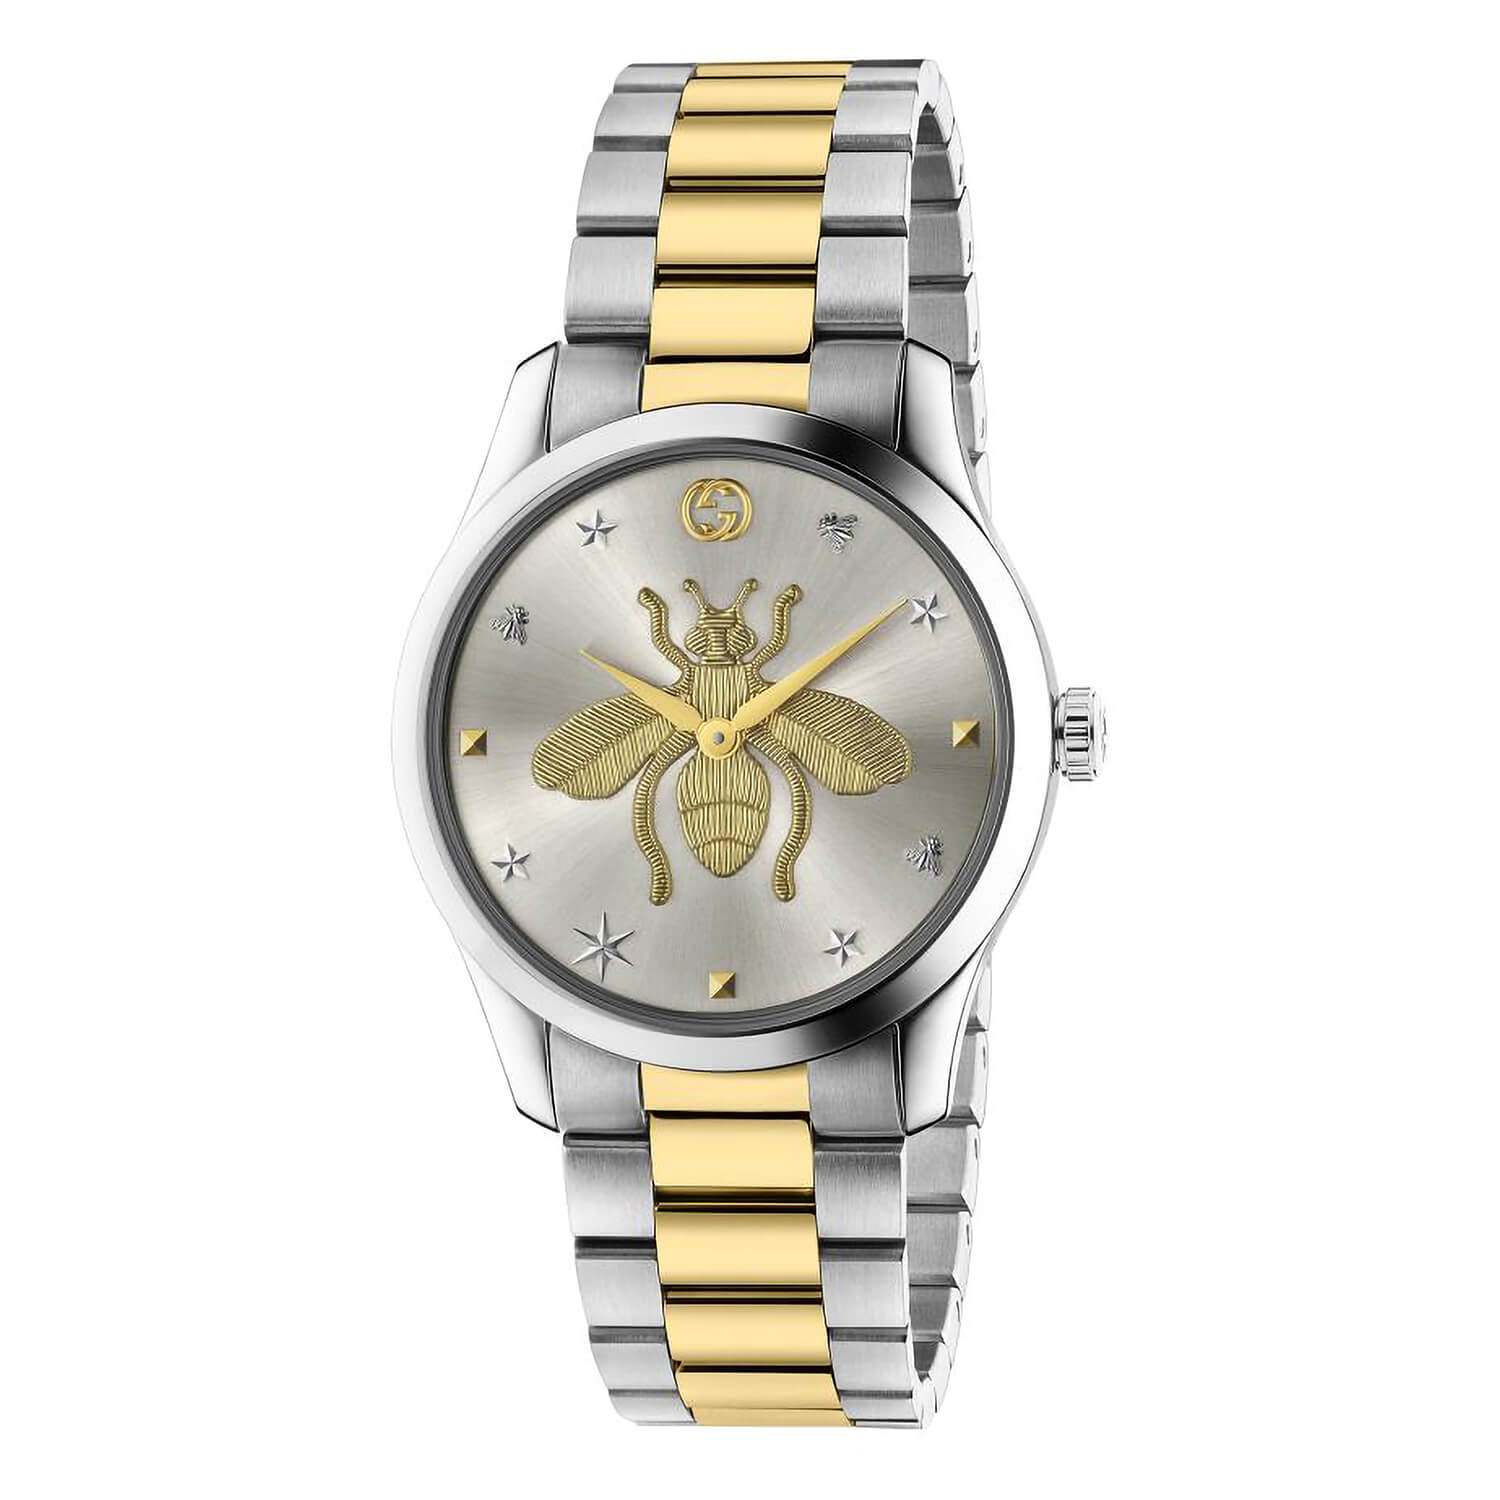 Gucci G-Timeless Iconic 38mm Unisex Watch